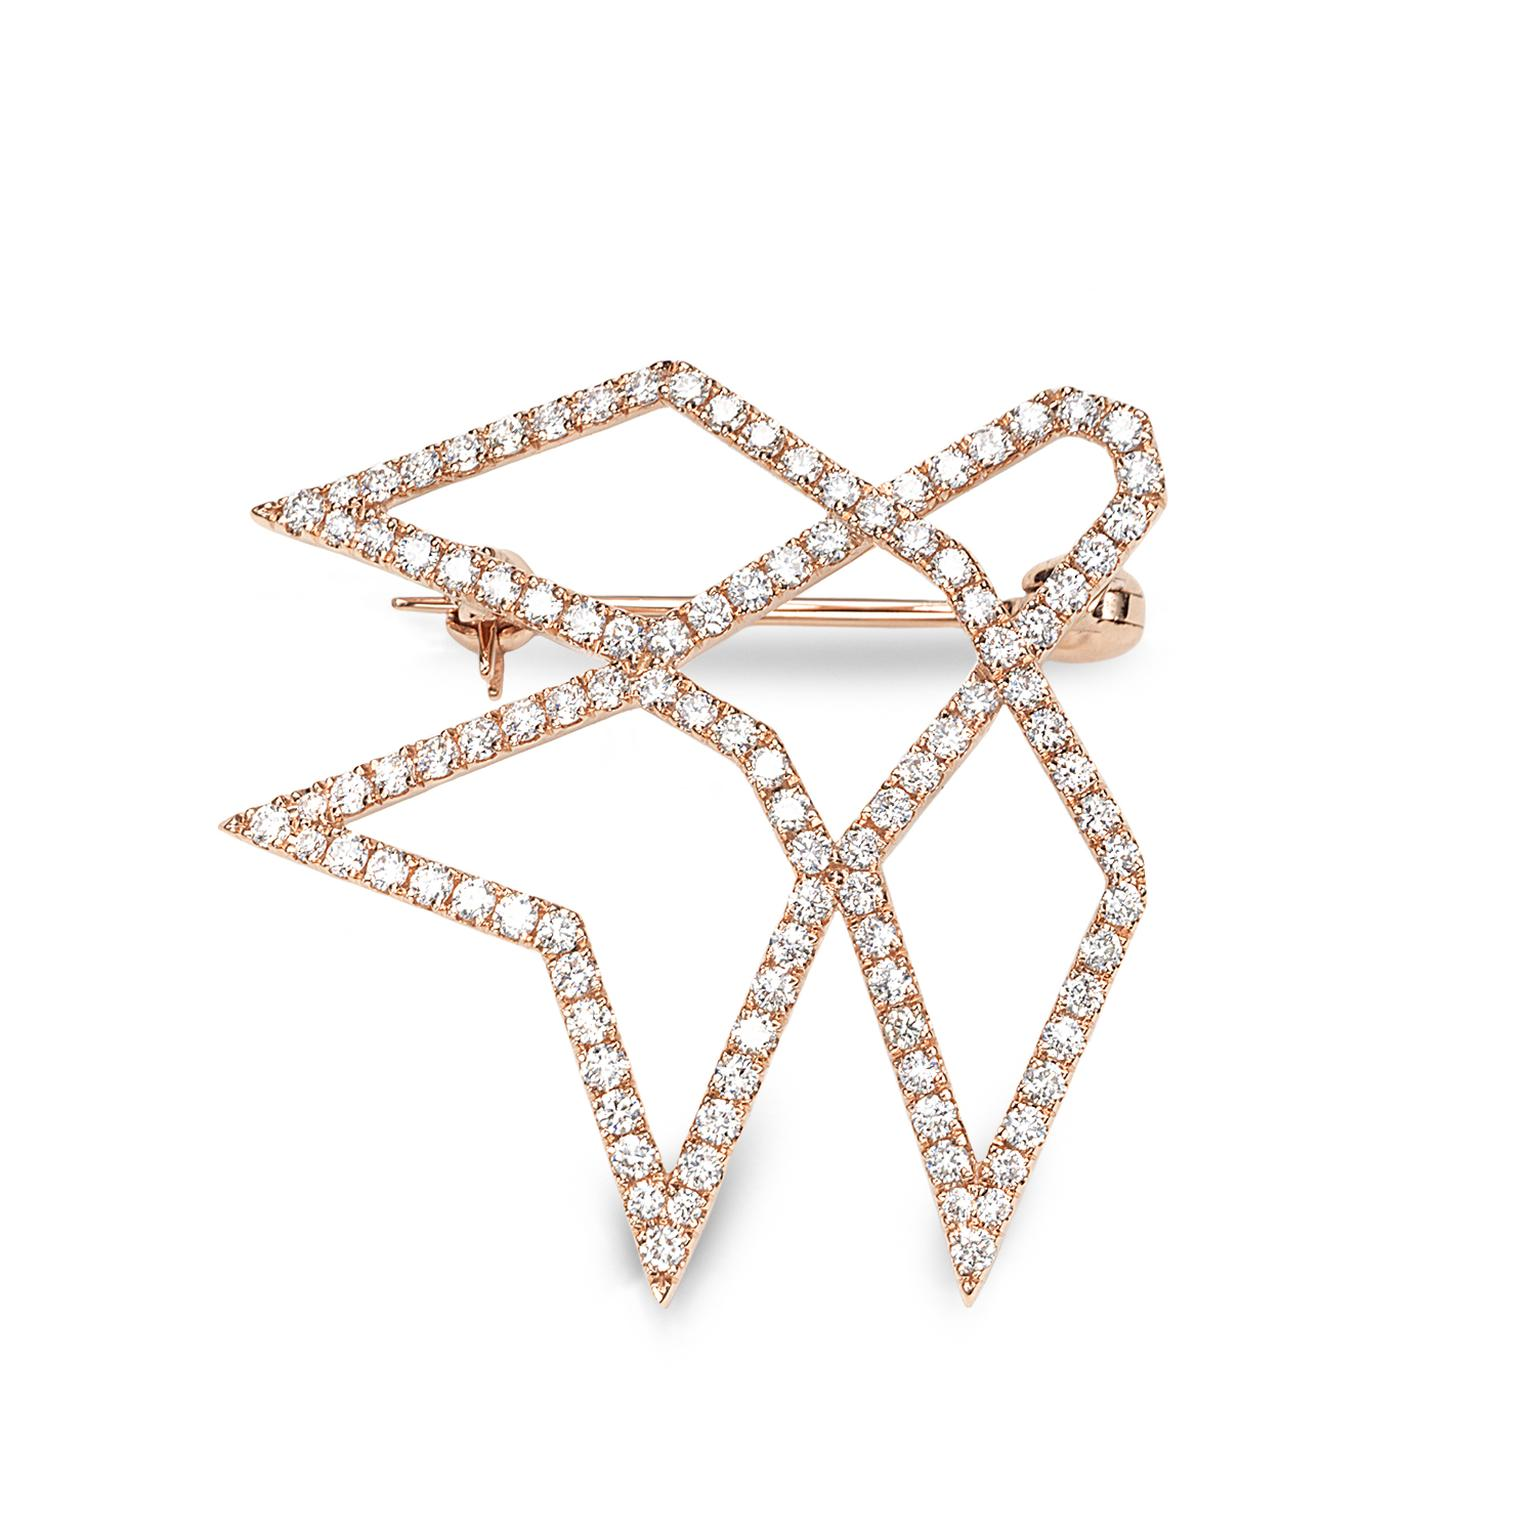 Octium Sun collection rose gold brooch with diamonds